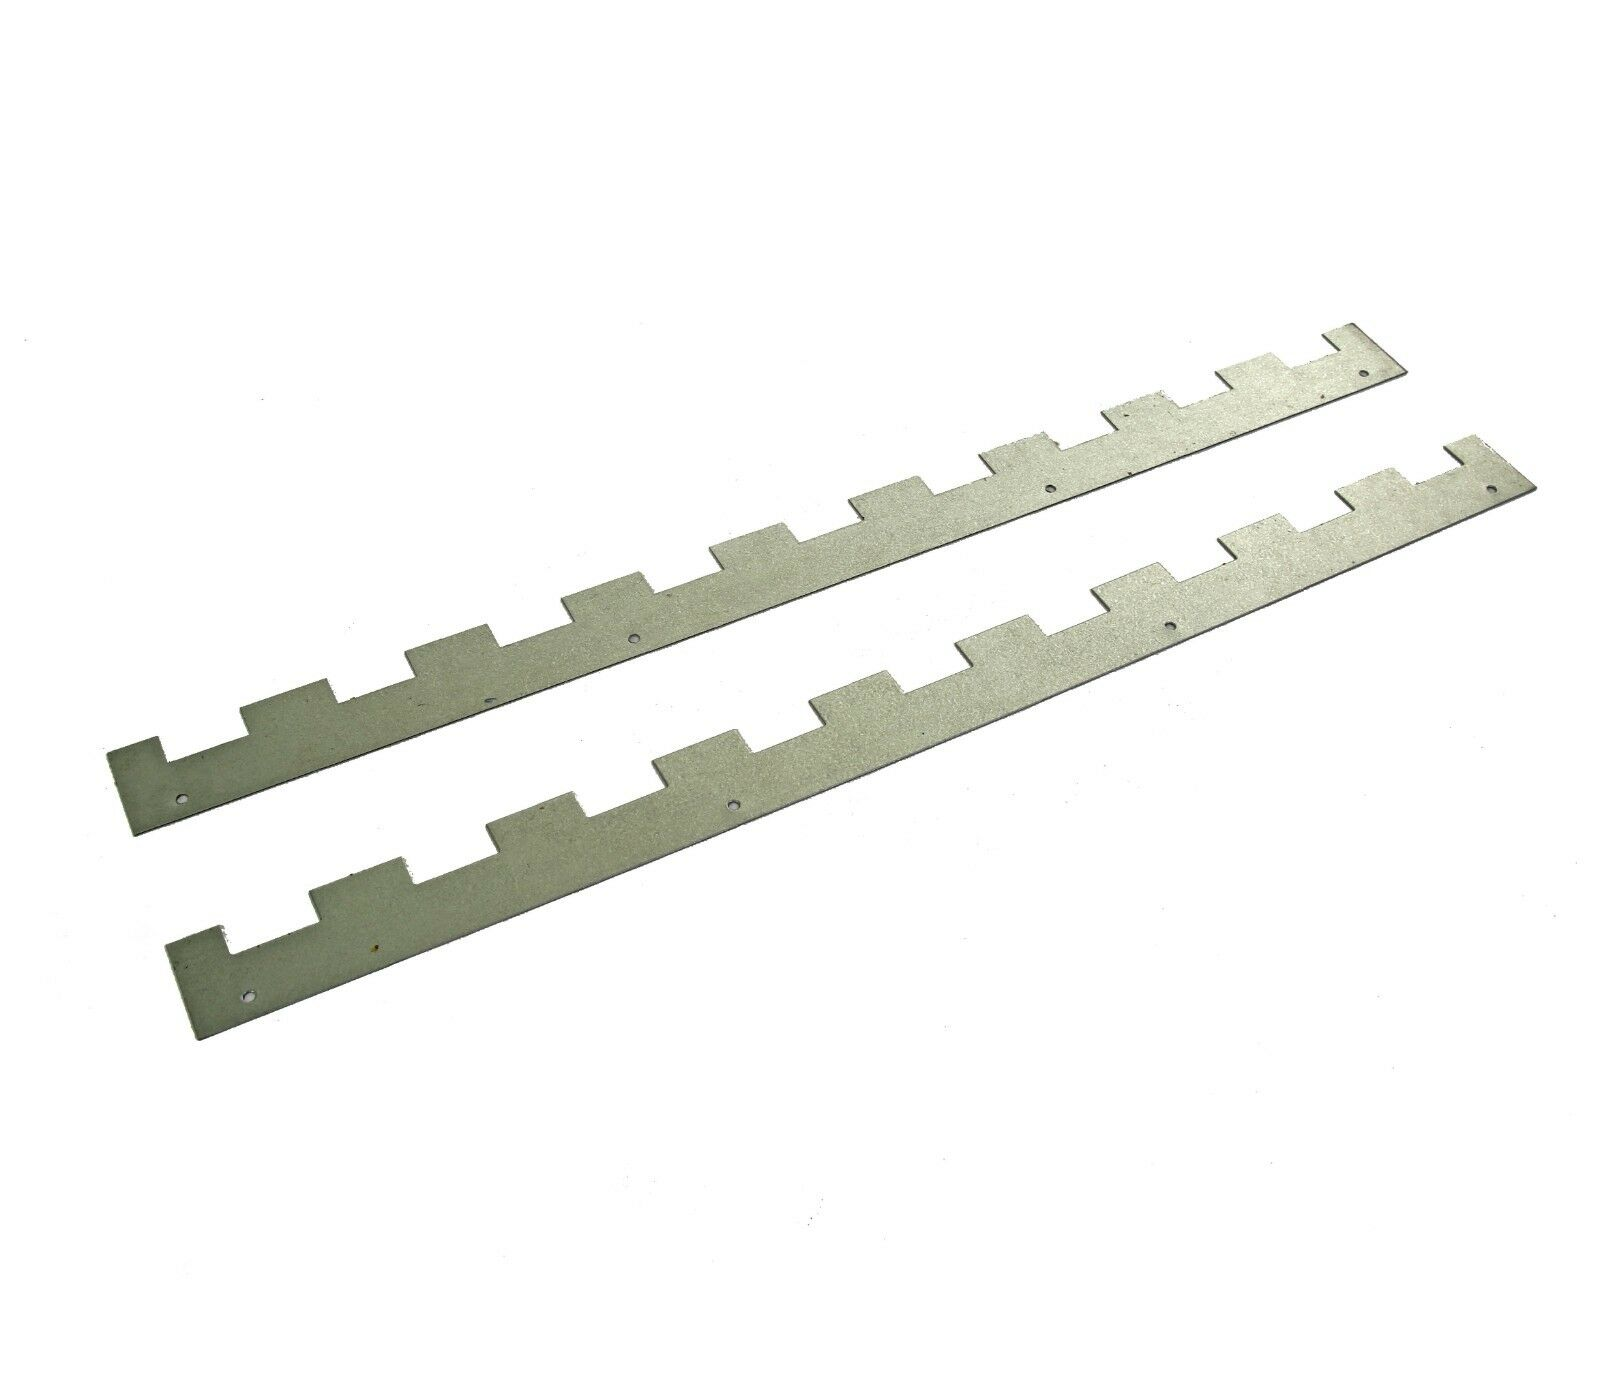 2 Castellated frame spacers (1 pair) holding 9 frames